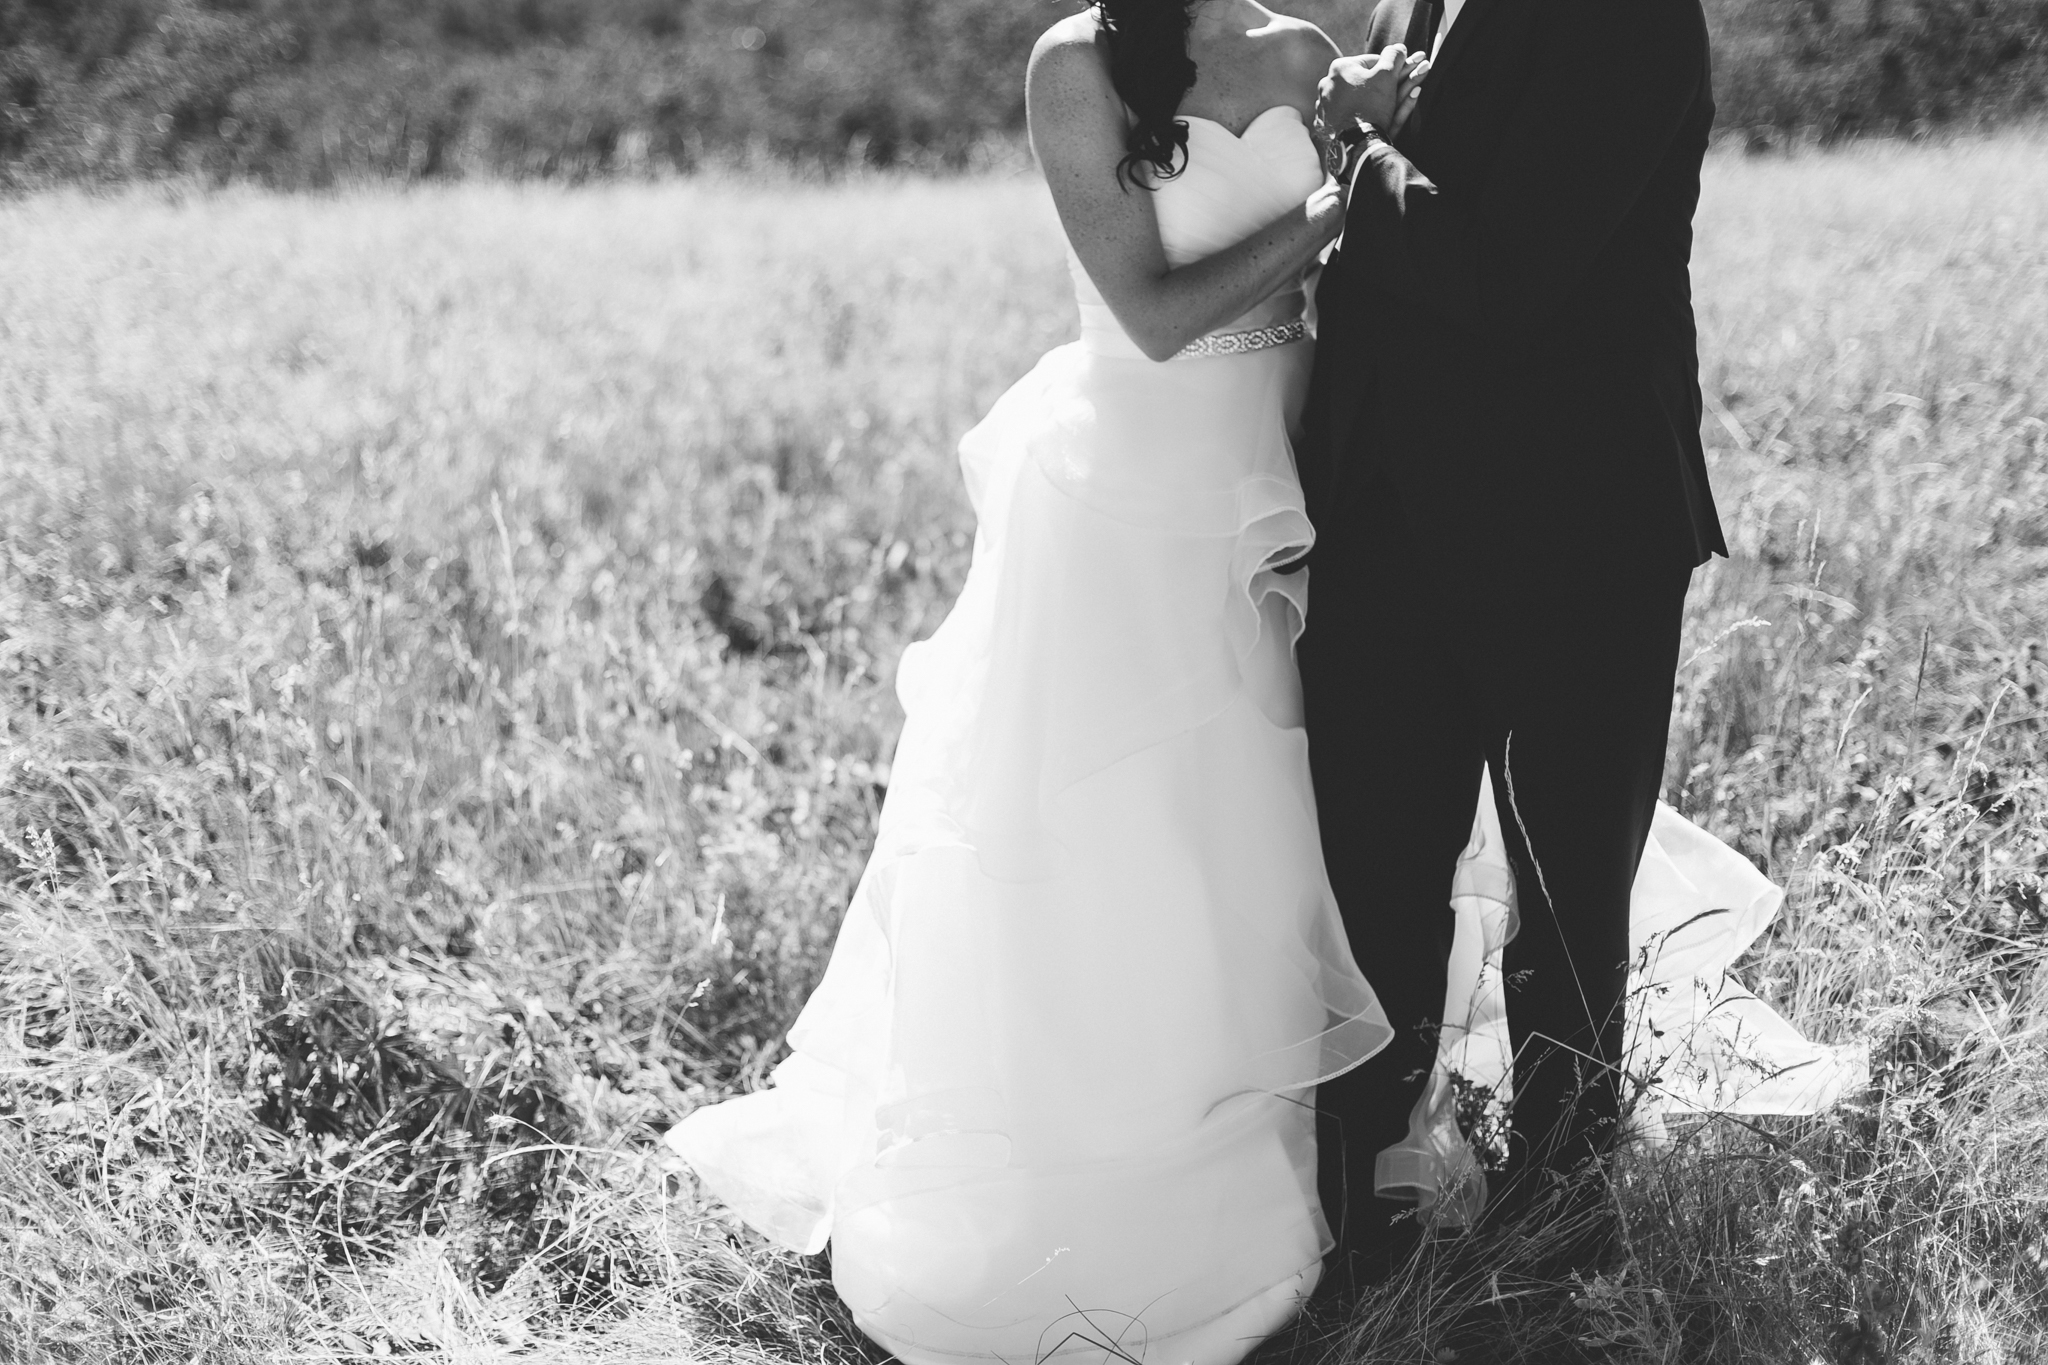 waterton-wedding-photographer-love-and-be-loved-photography-lethbridge-calgary-adam-jodie-image-picture-photo-103.jpg